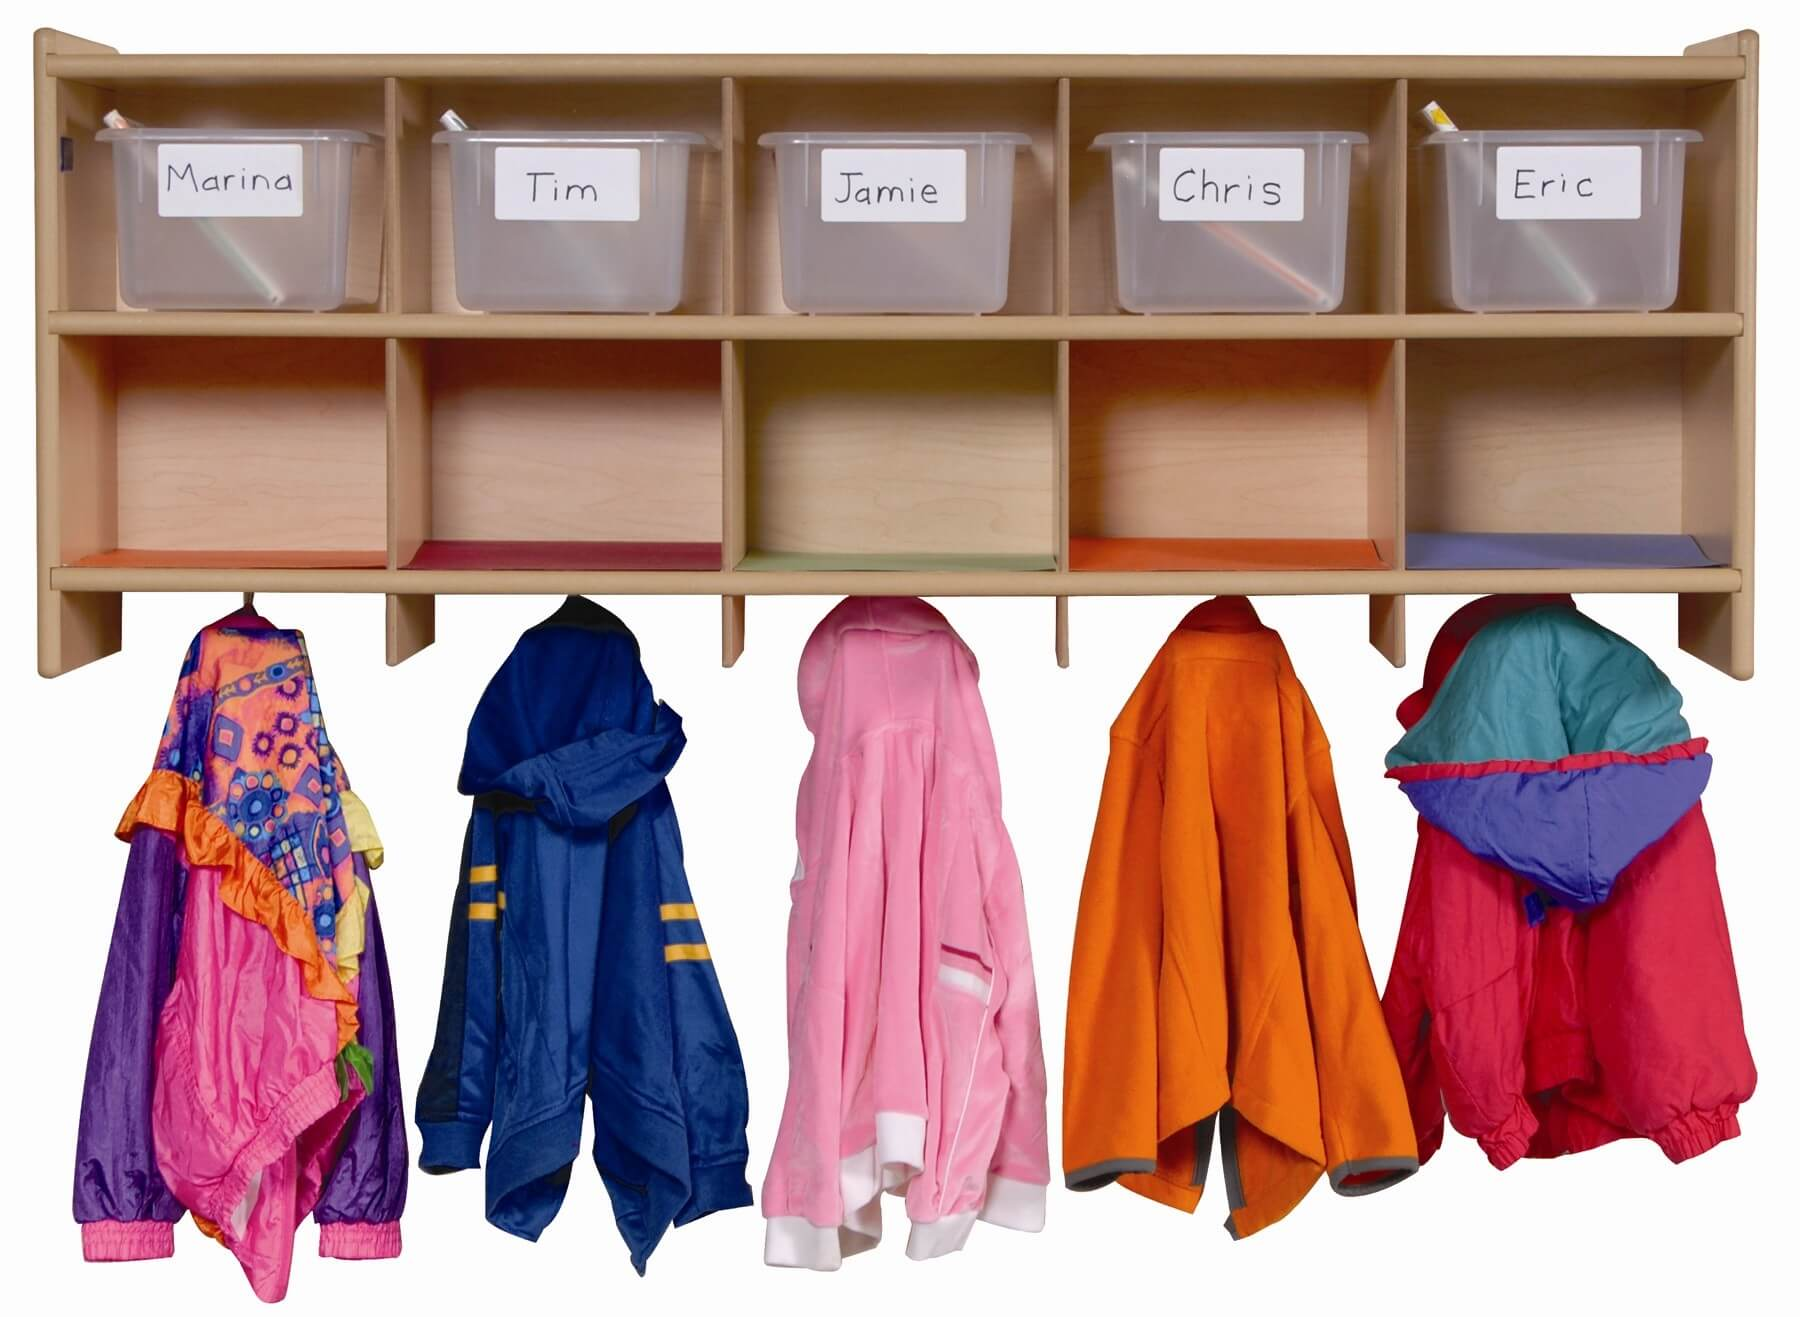 A floating mudroom storage unit, this is for you. It offers floating shelving with hooks underneath for several coats.